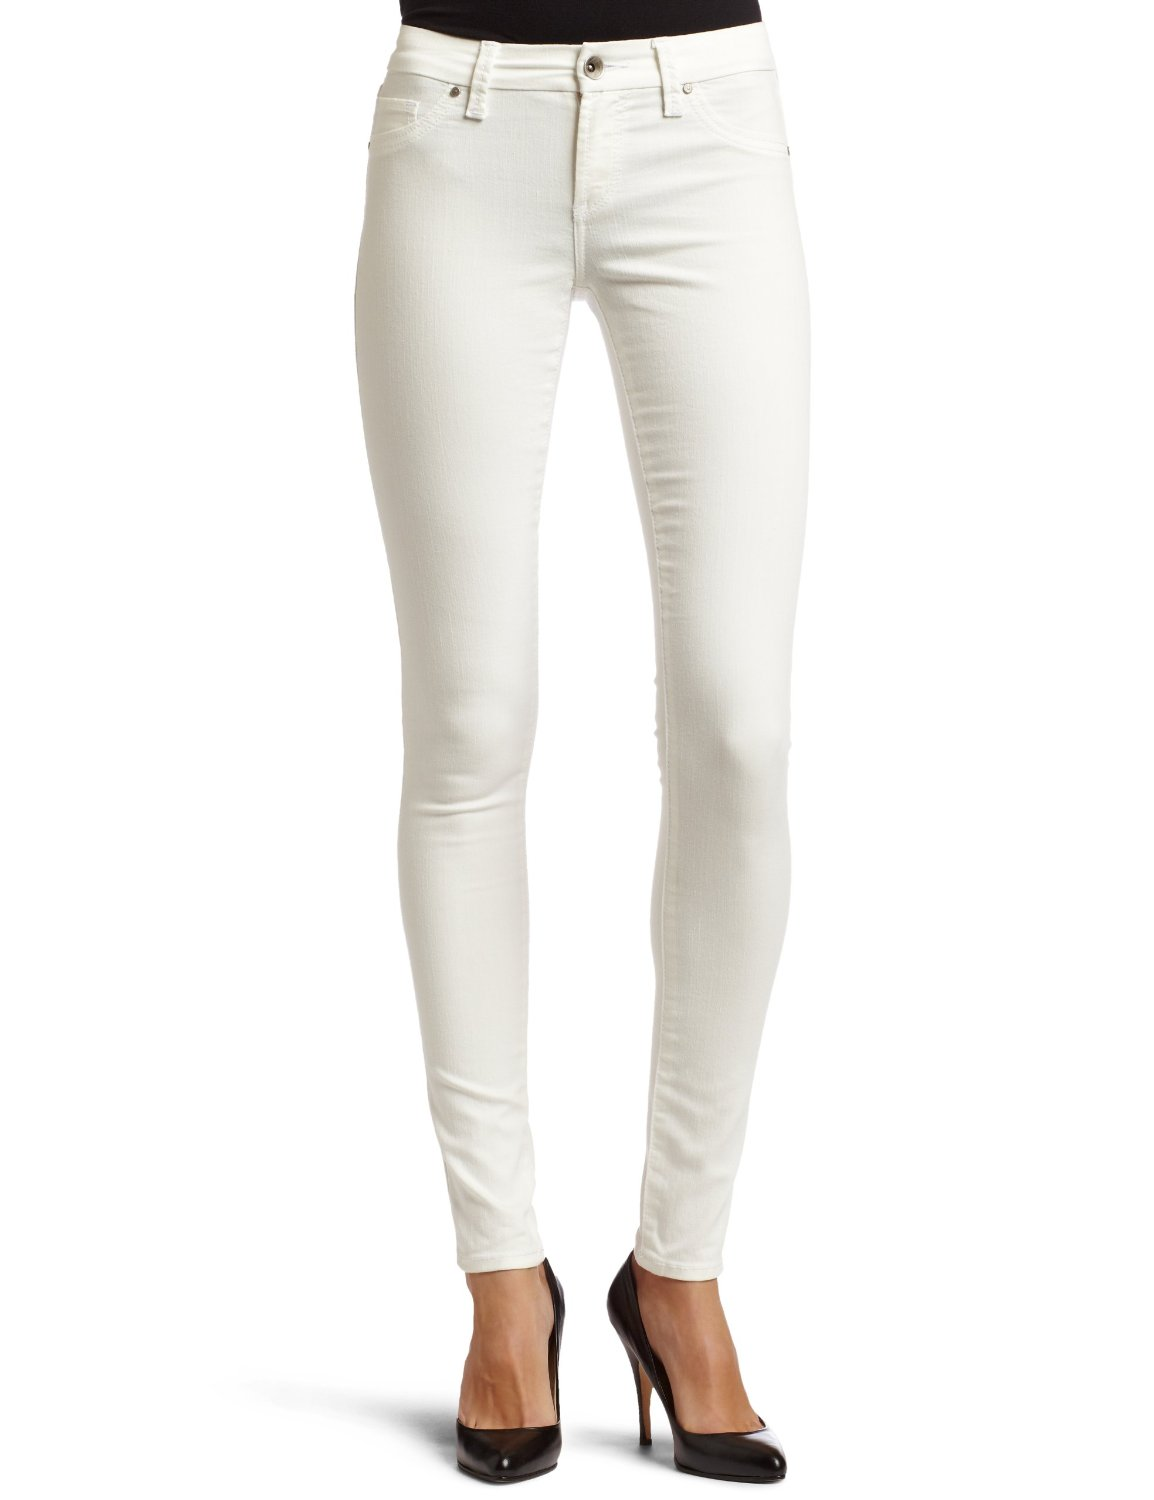 Low rise for an every day skinny fit. Shop a wide selection of skinny jeans for teen girls and women in a variety of colors and finishes for your best look. Aeropostale.